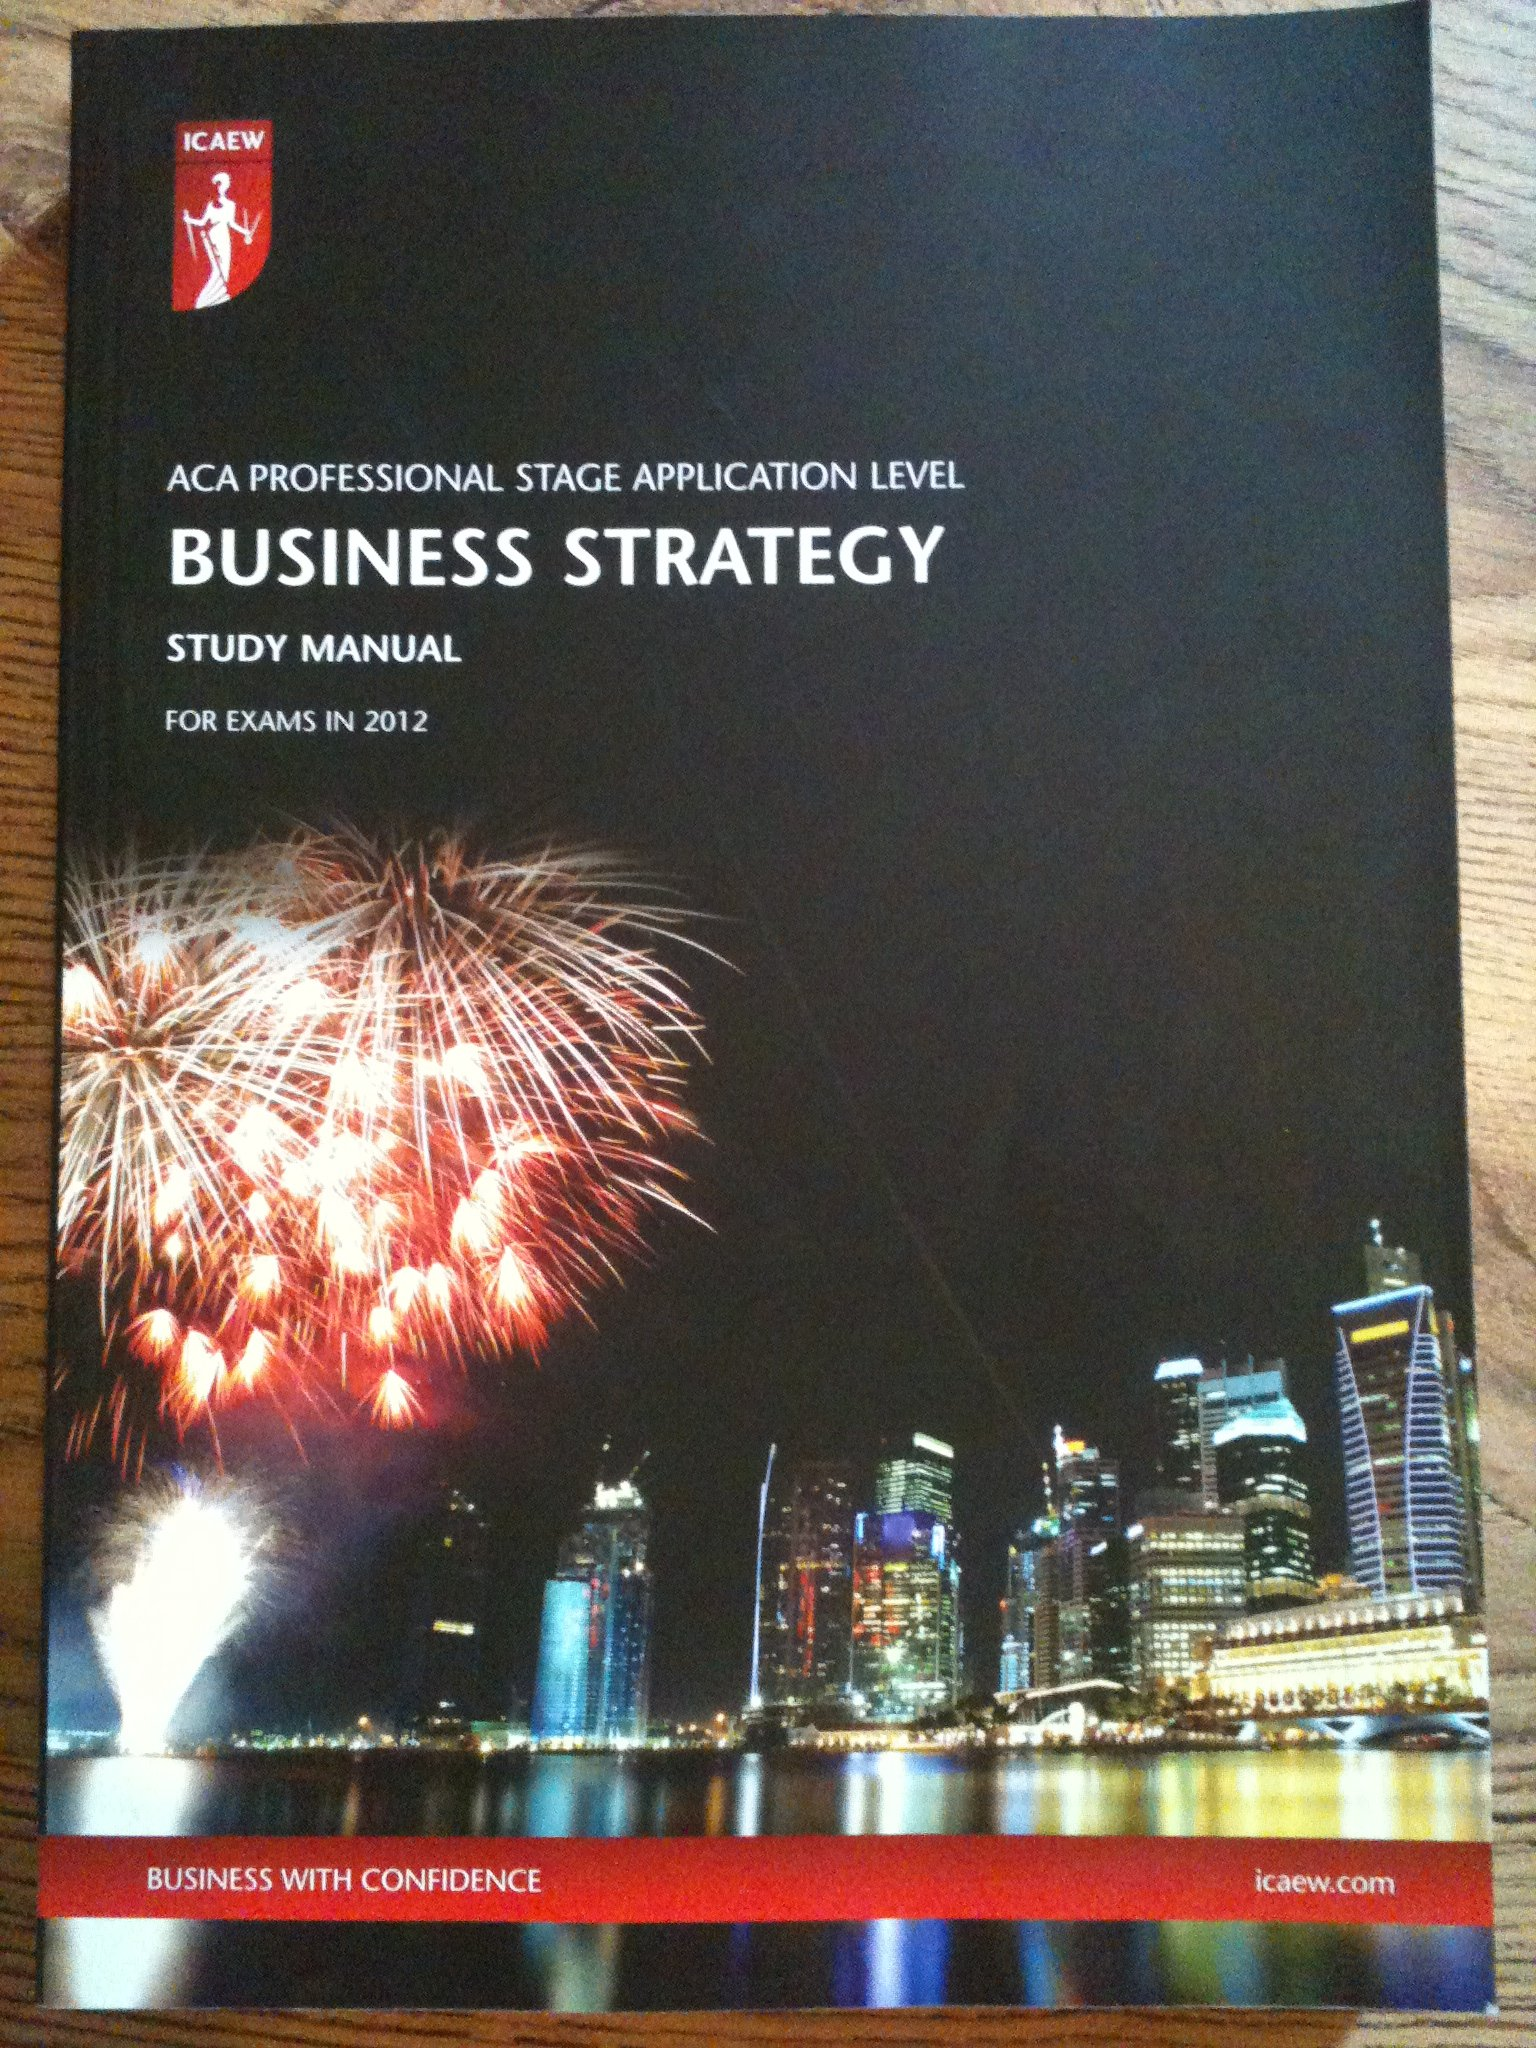 ICAEW ACA Business Strategy Study Manual (2012): Amazon.co.uk: Institute of  Chartered Accountants England and Wales: Books